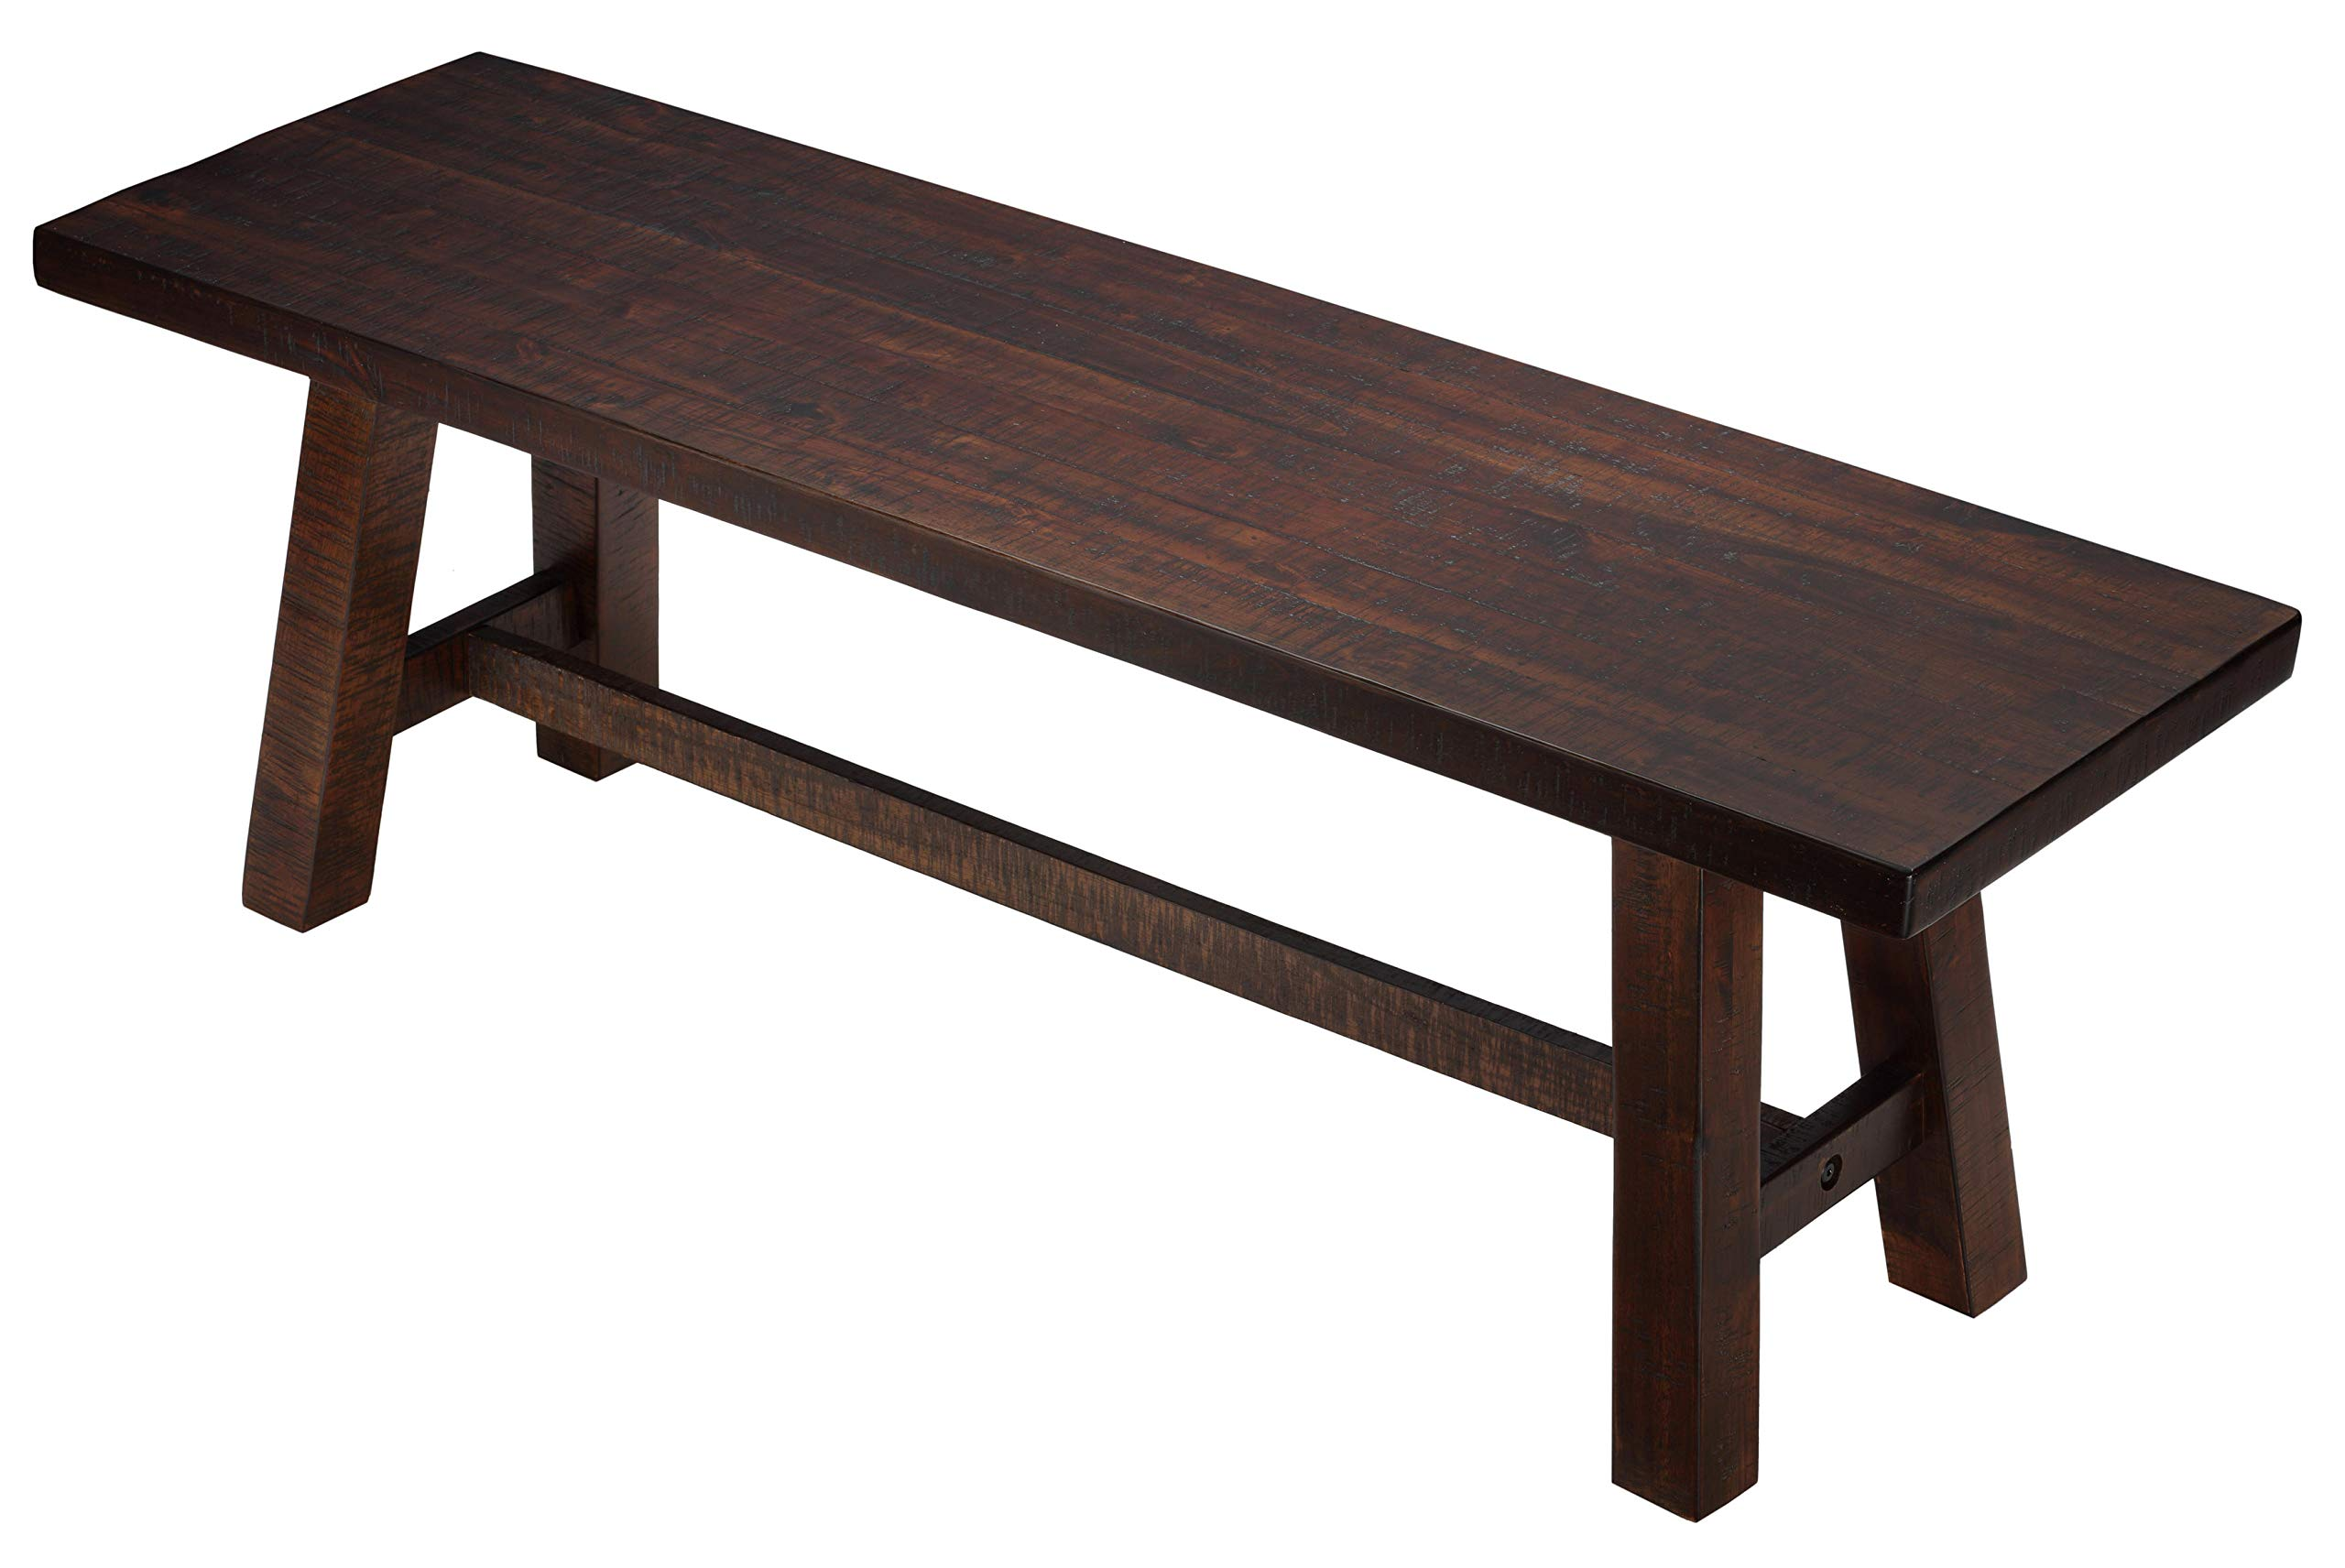 Cortesi Home Figi Dining Bench, Rustic Wood by Cortesi Home